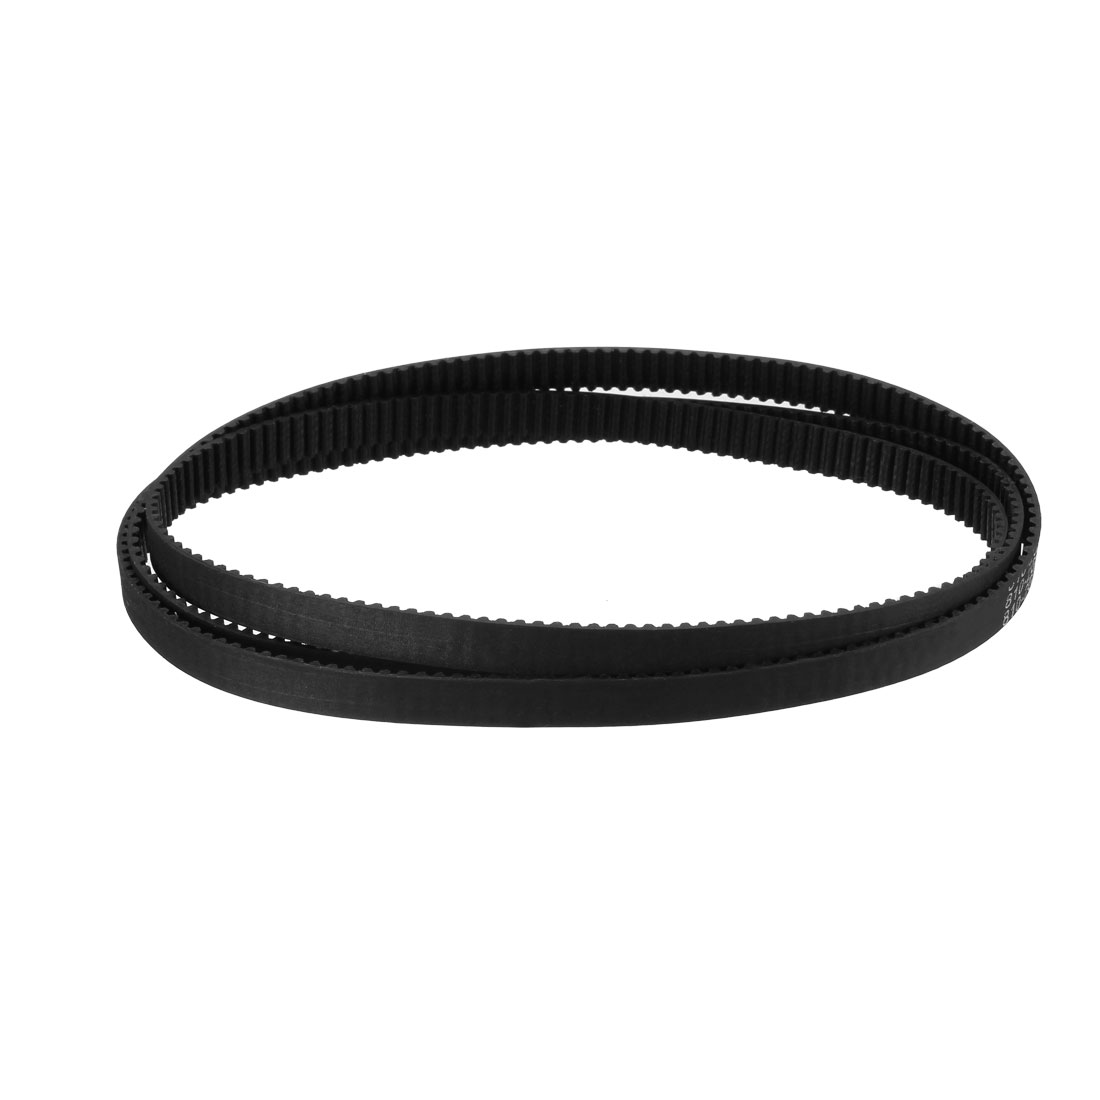 GT2 Timing Belt 810mm Closed Fit Synchronous Wheel for 3D Printer